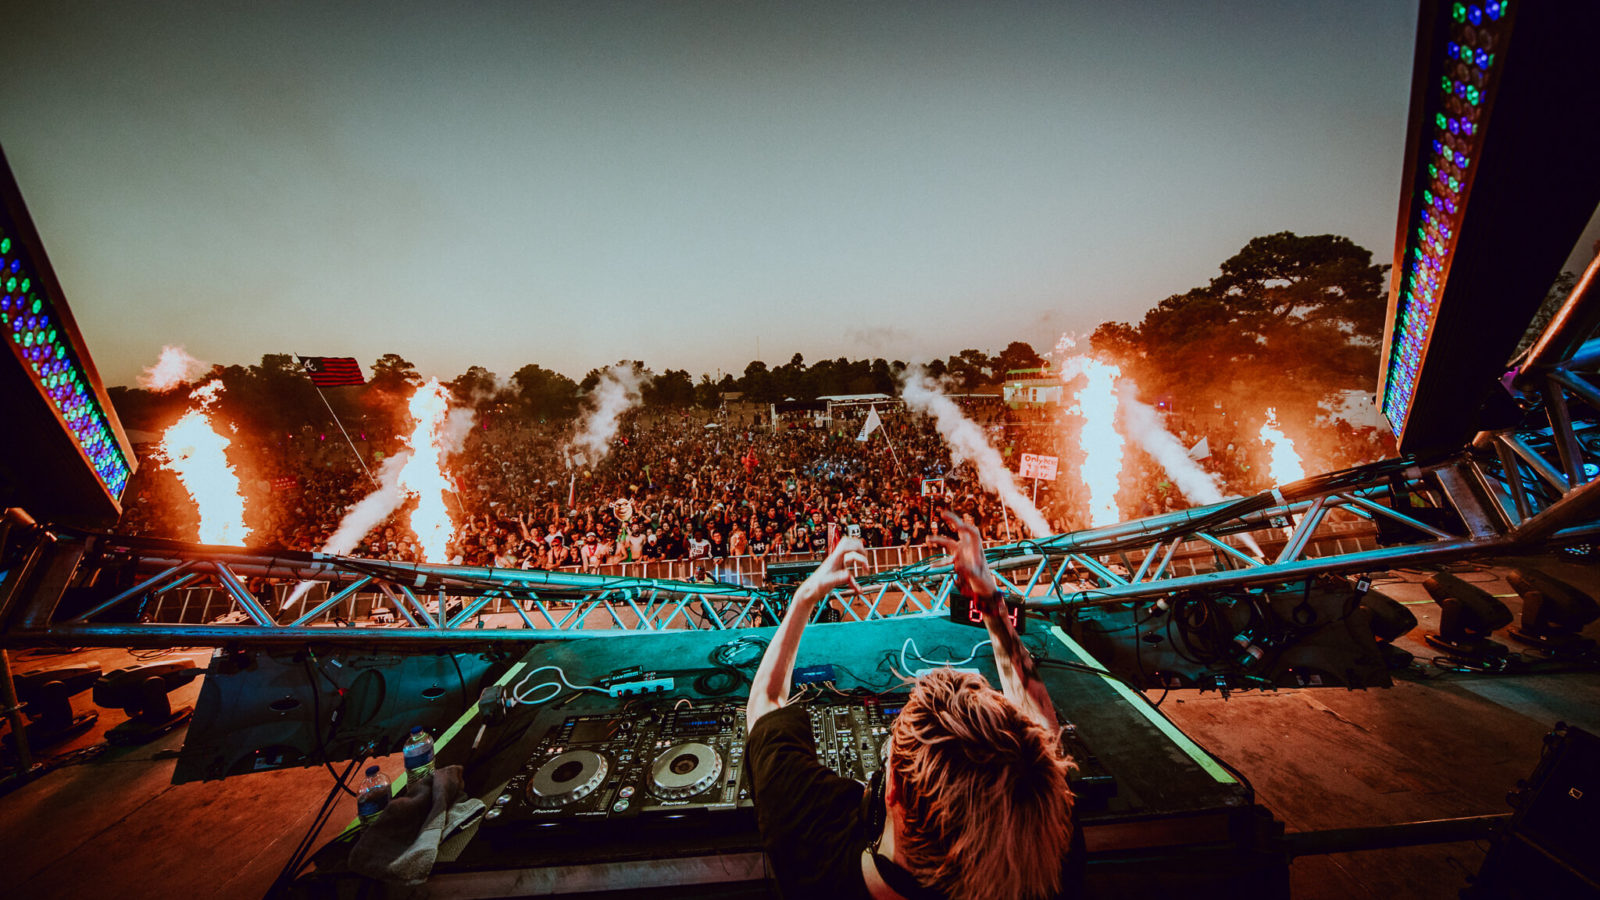 ghastly smashing the dance on main stage